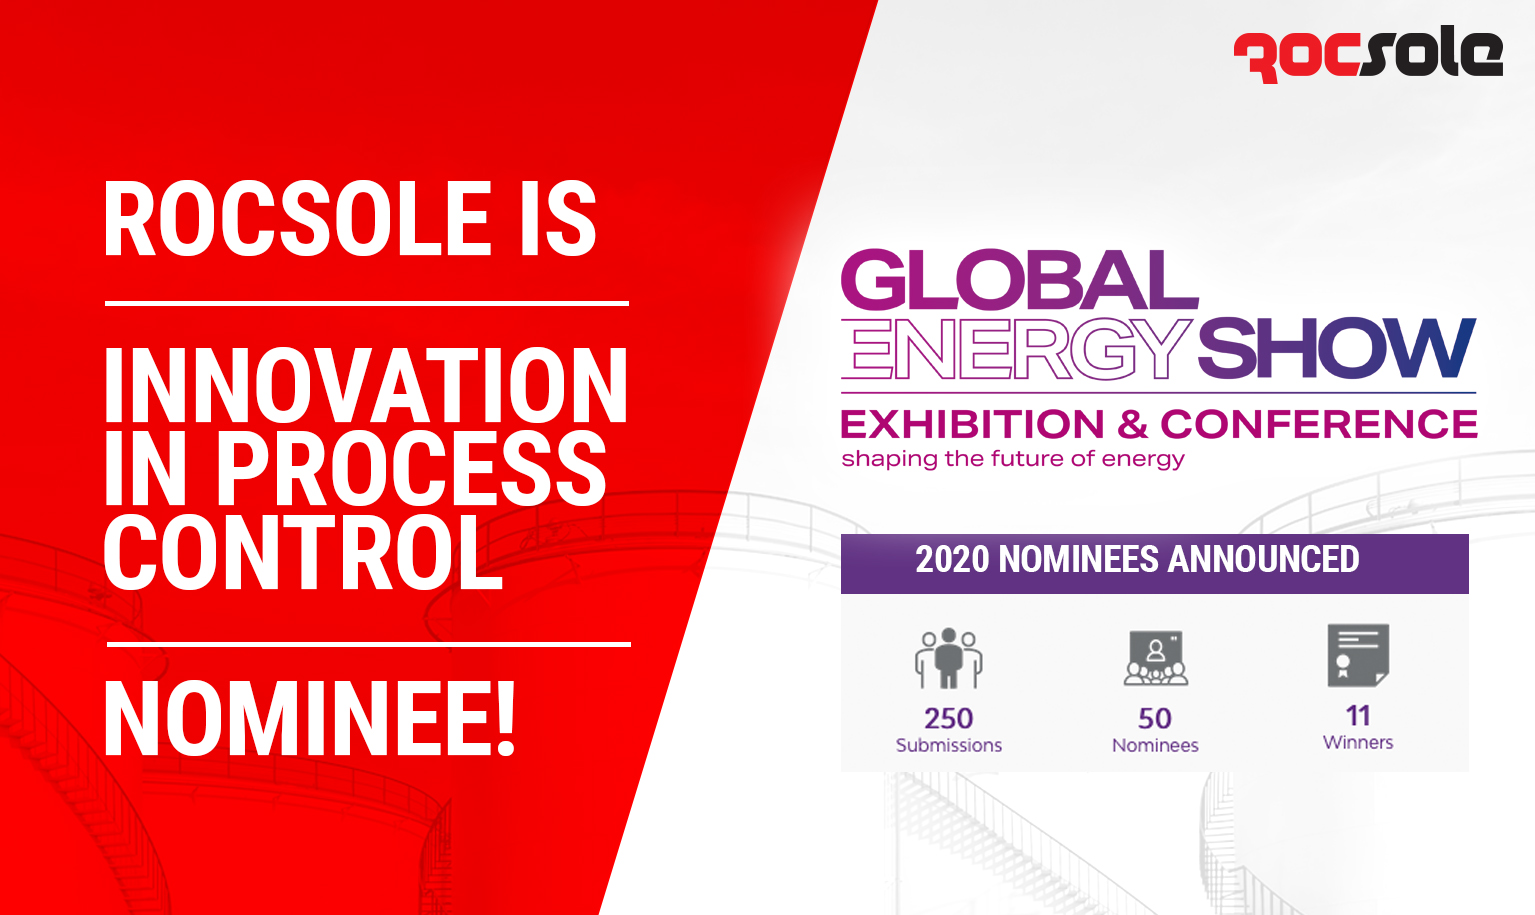 Rocsole Nominated at the Global Energy Awards